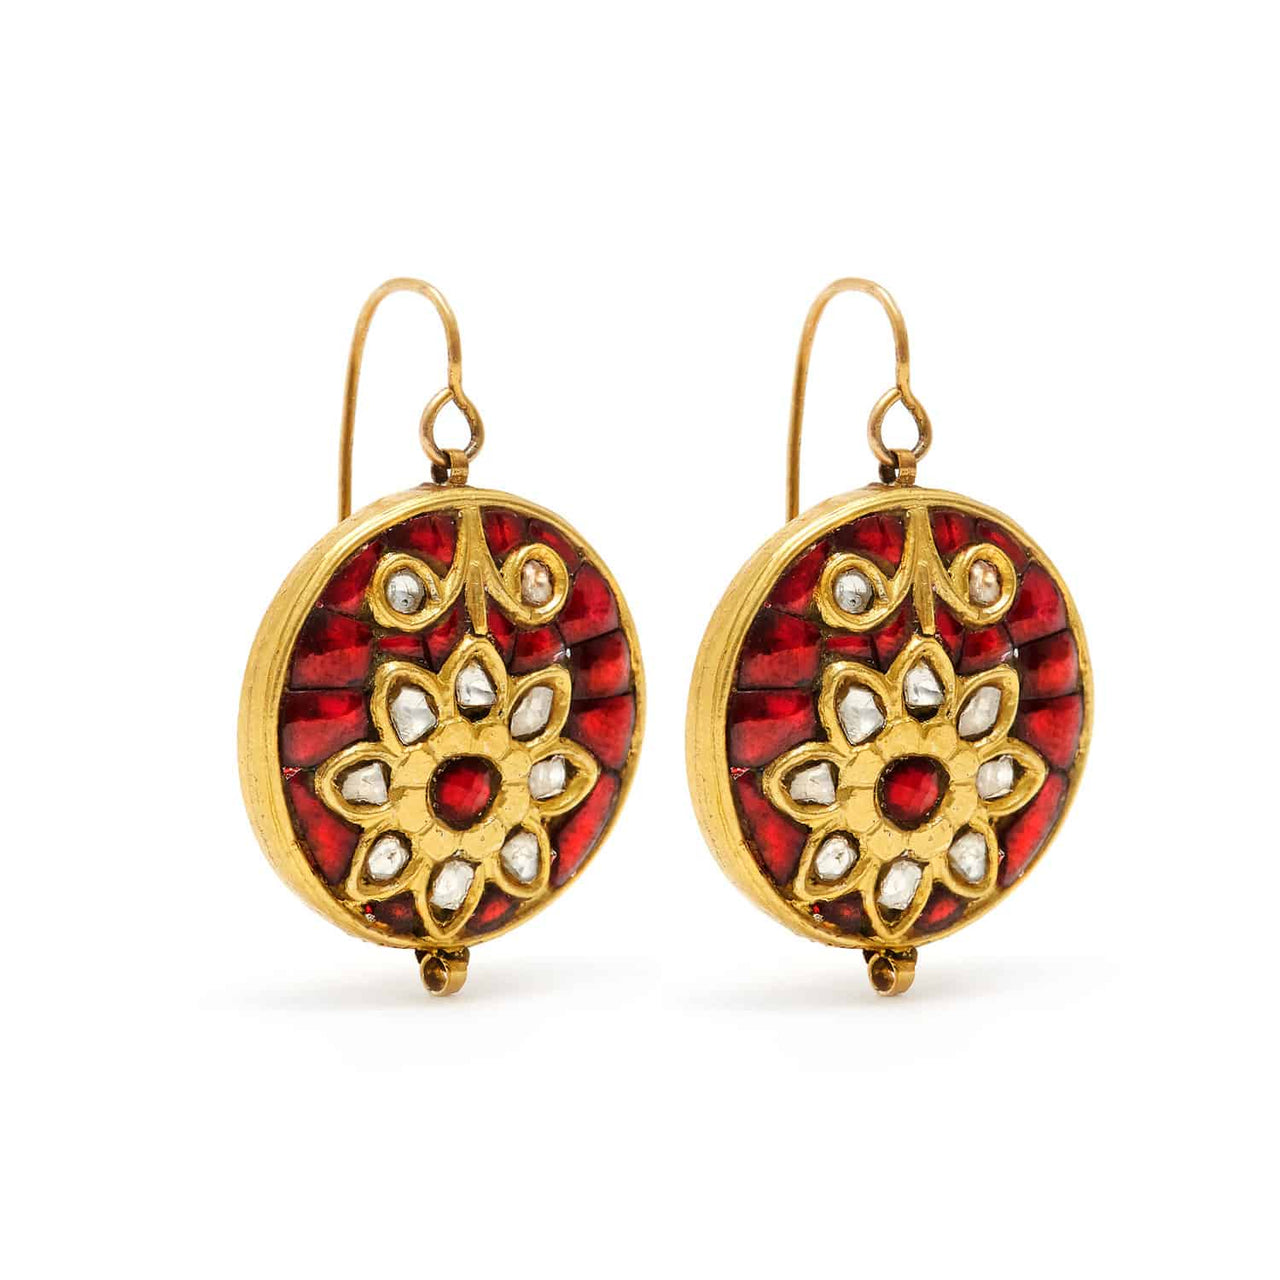 Jaipur Atelier Ruby & Diamond Coin Earrings